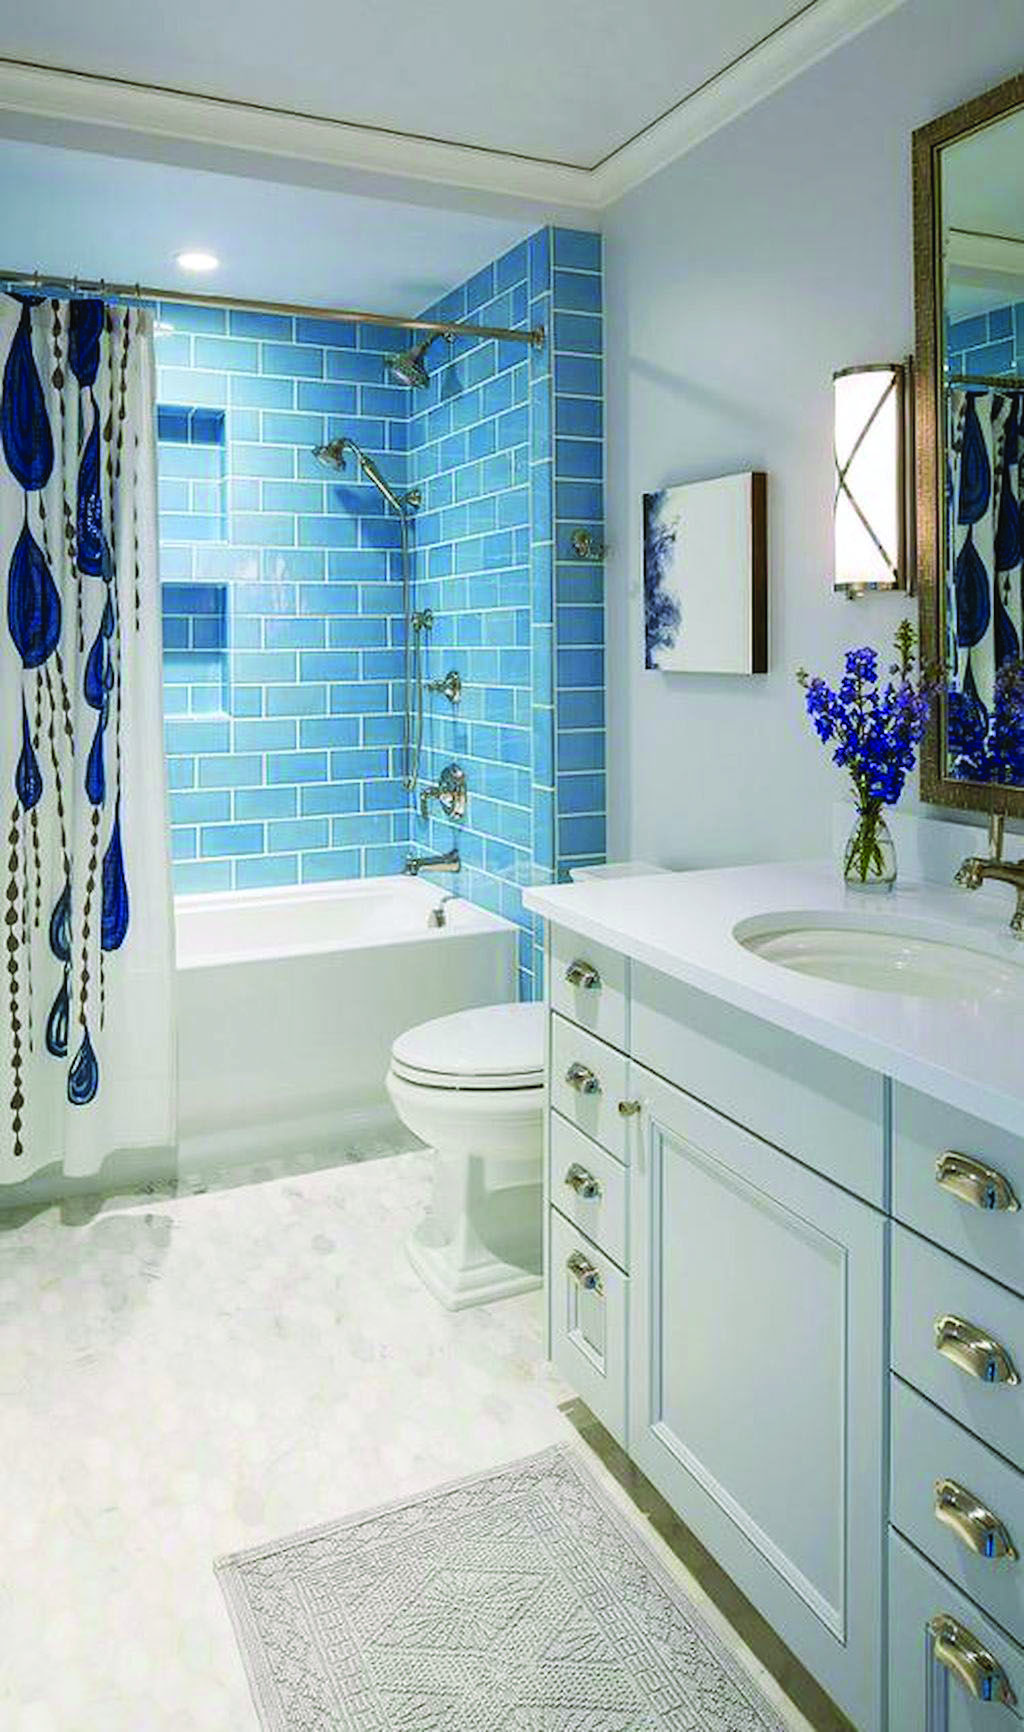 10 Paint Color Ideas For Small Bathrooms Homes Tre Budget Bathroom Remodel Modern Small Bathrooms Small Remodel